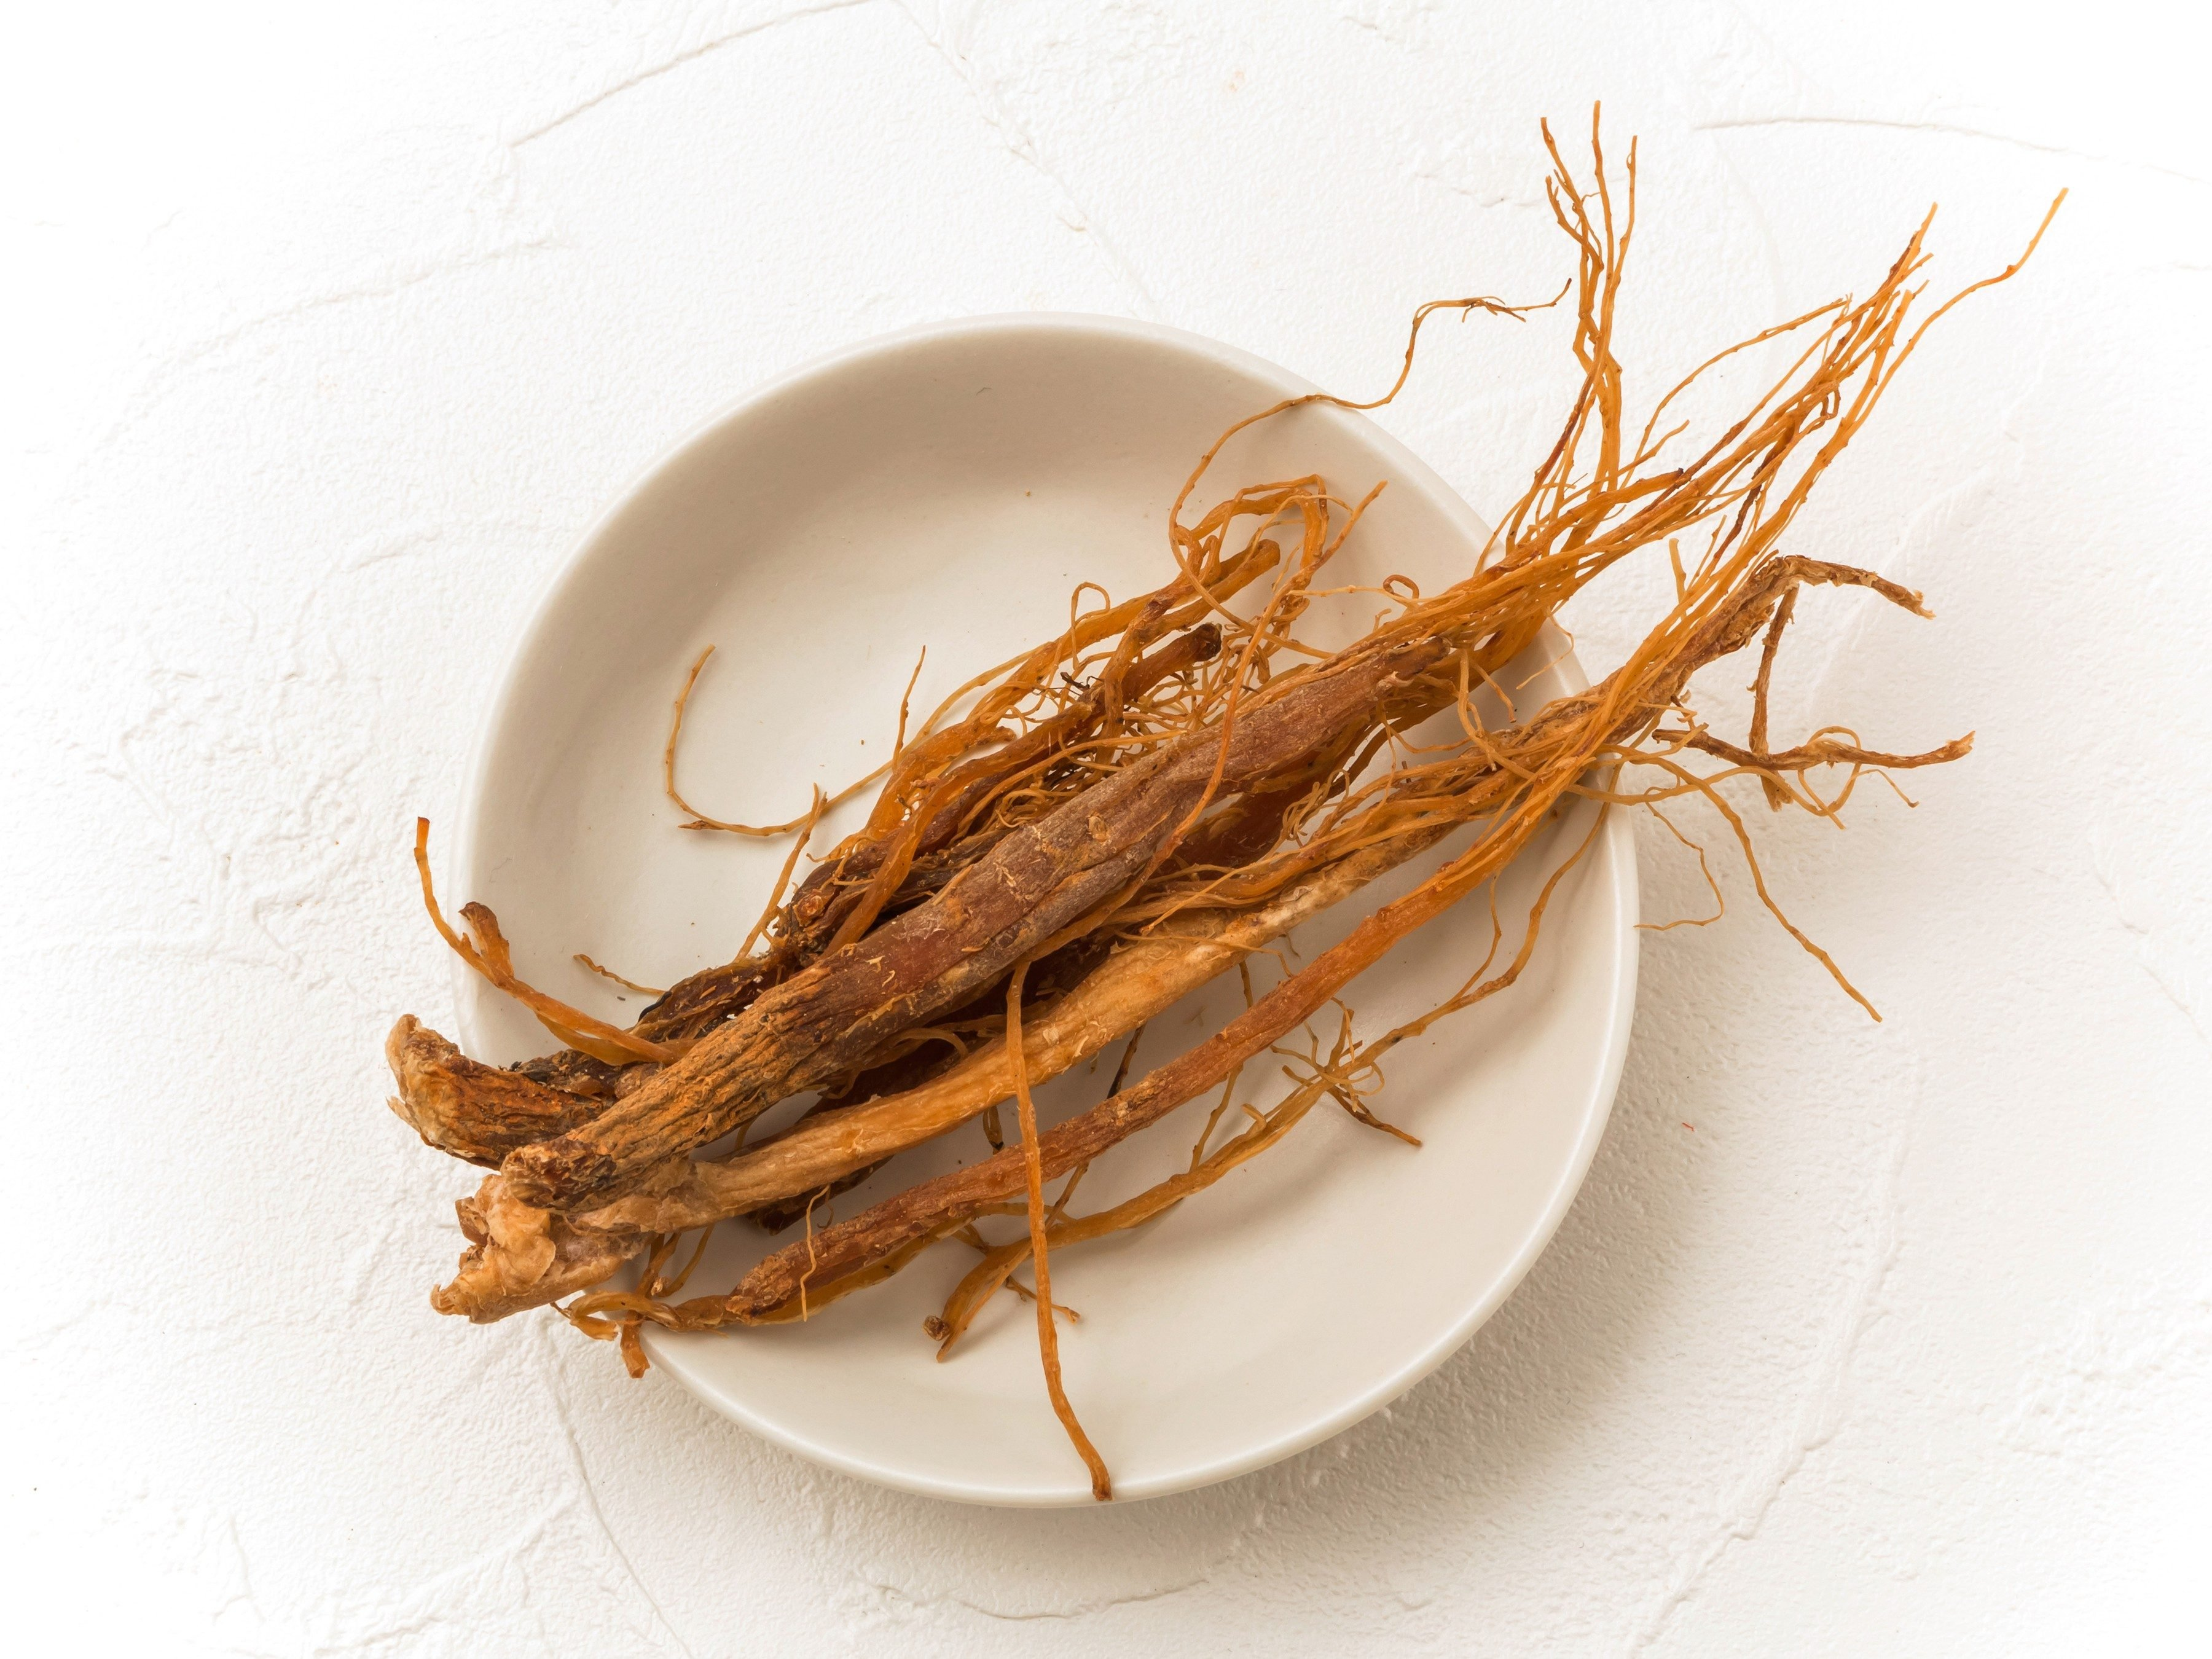 2. American and Panax Ginseng